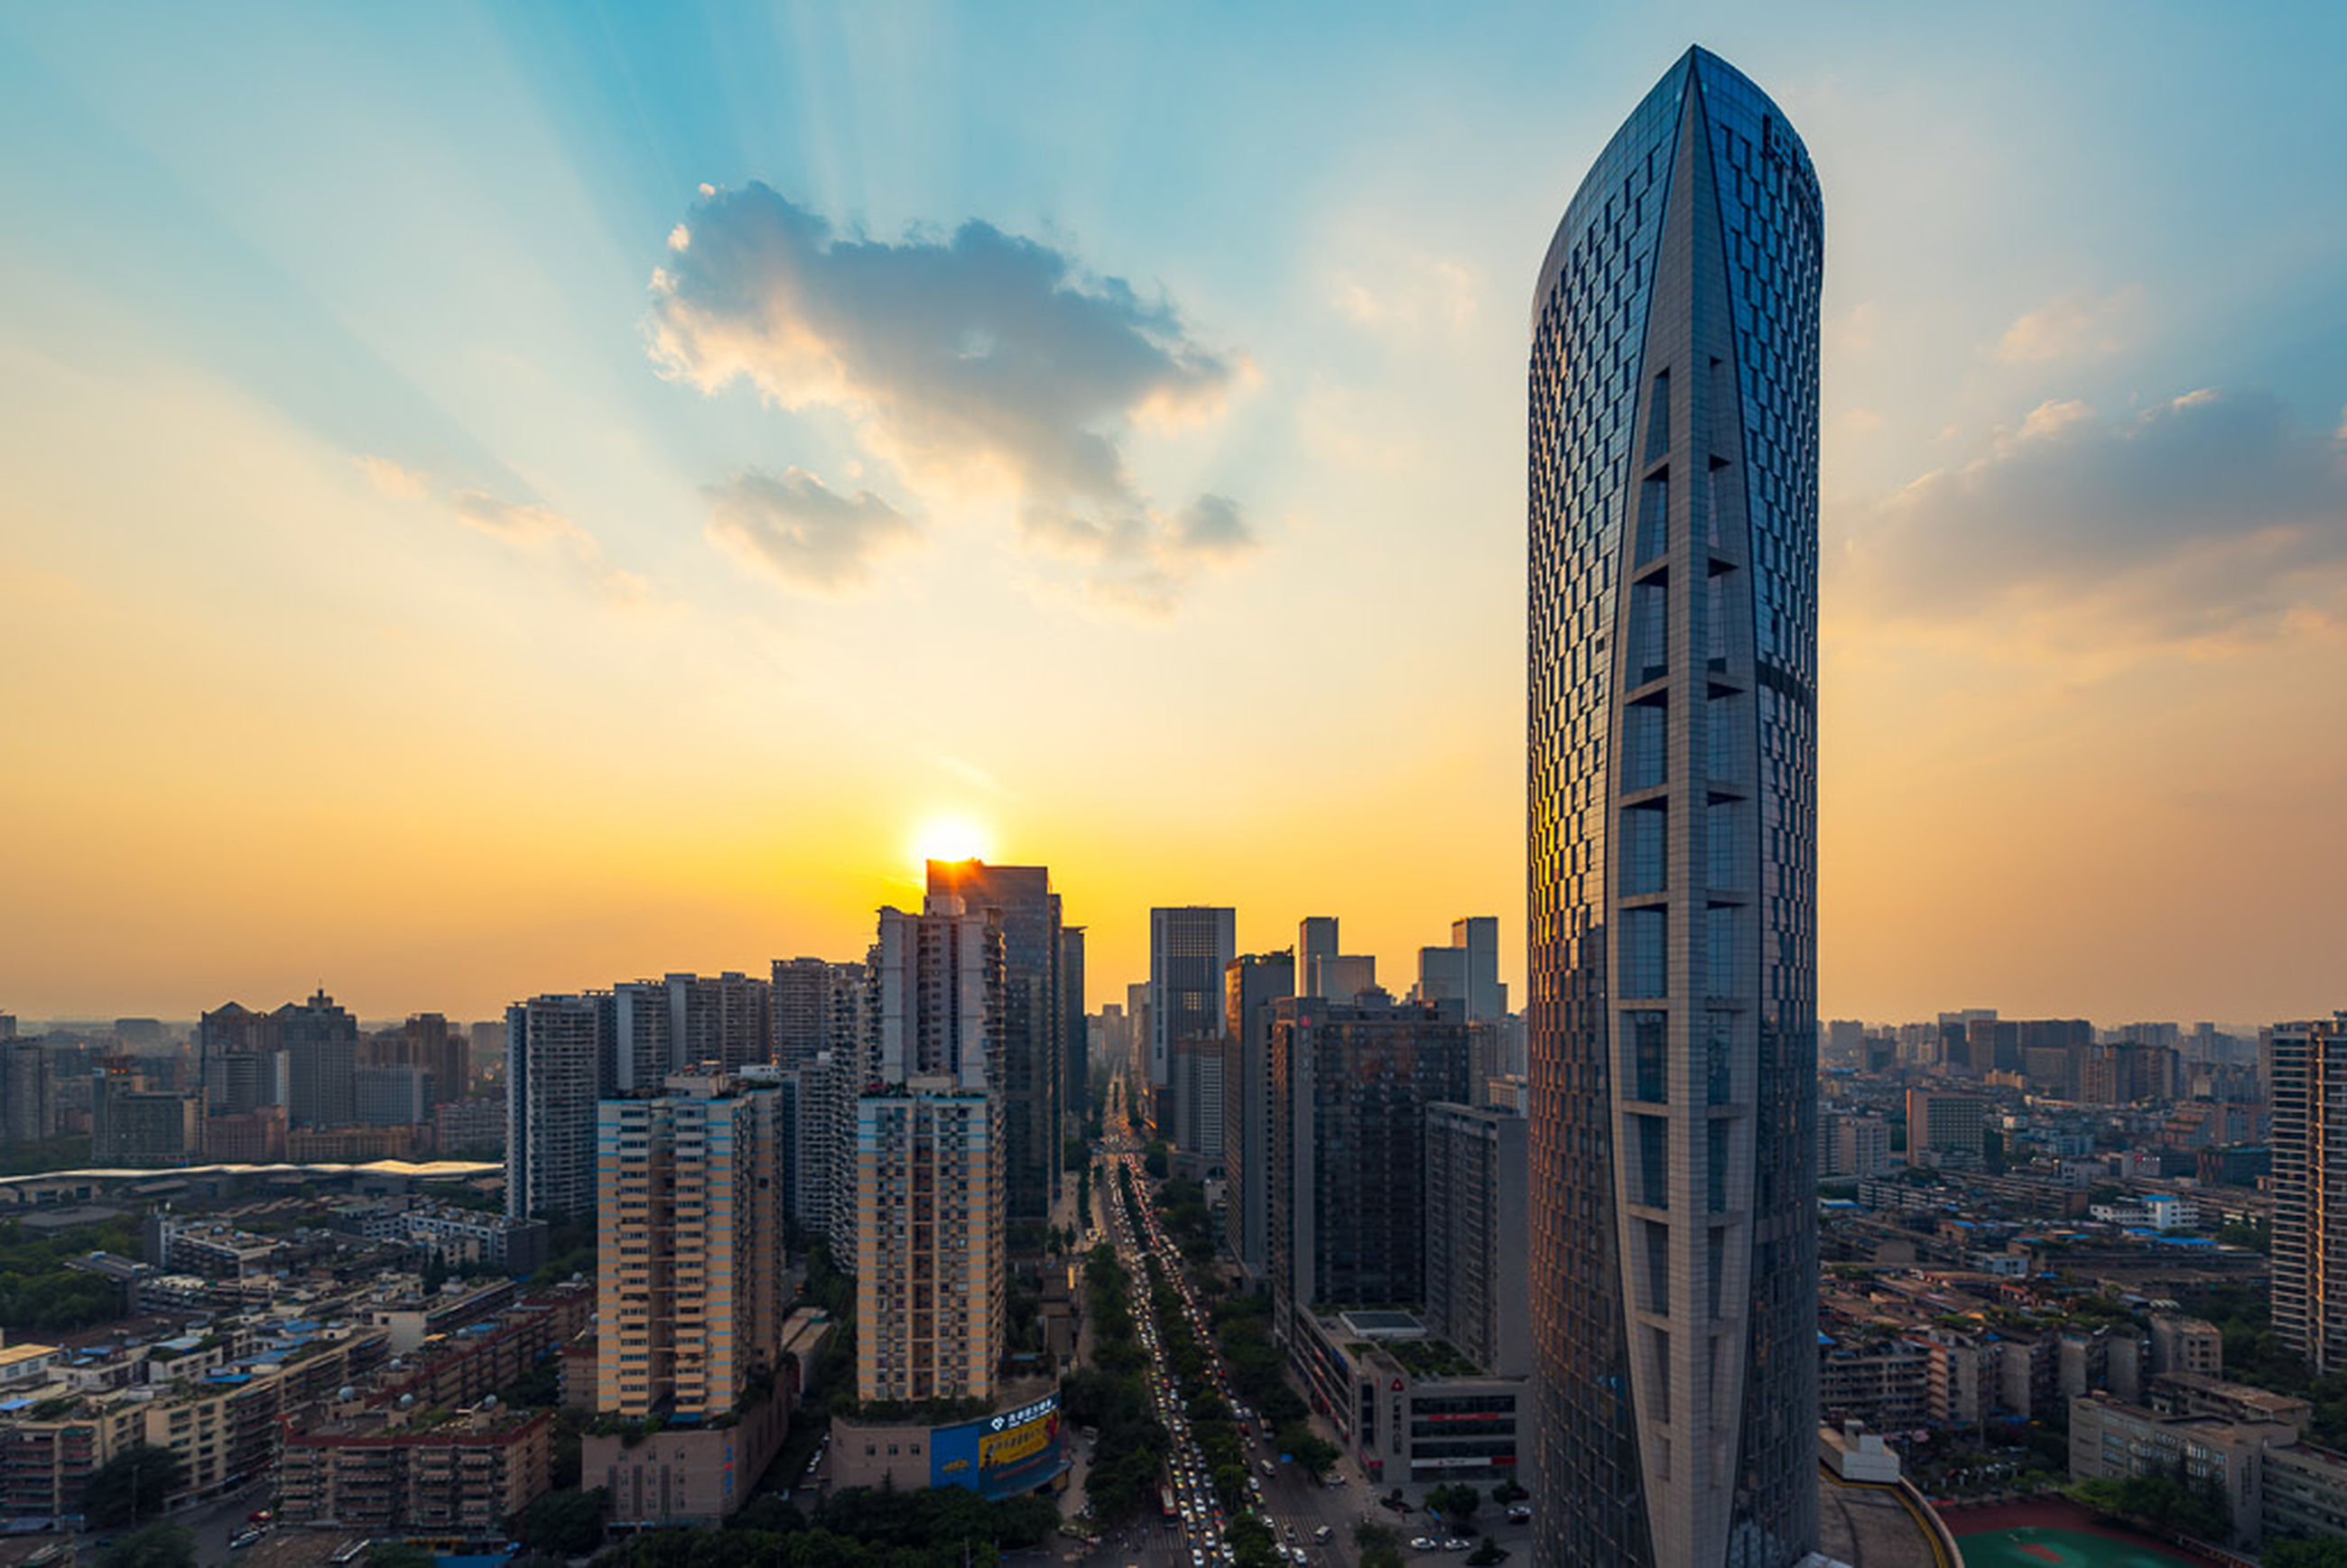 architecture, skyscraper, sunset, building exterior, city, cityscape, built structure, modern, sky, no people, cloud - sky, outdoors, urban skyline, day